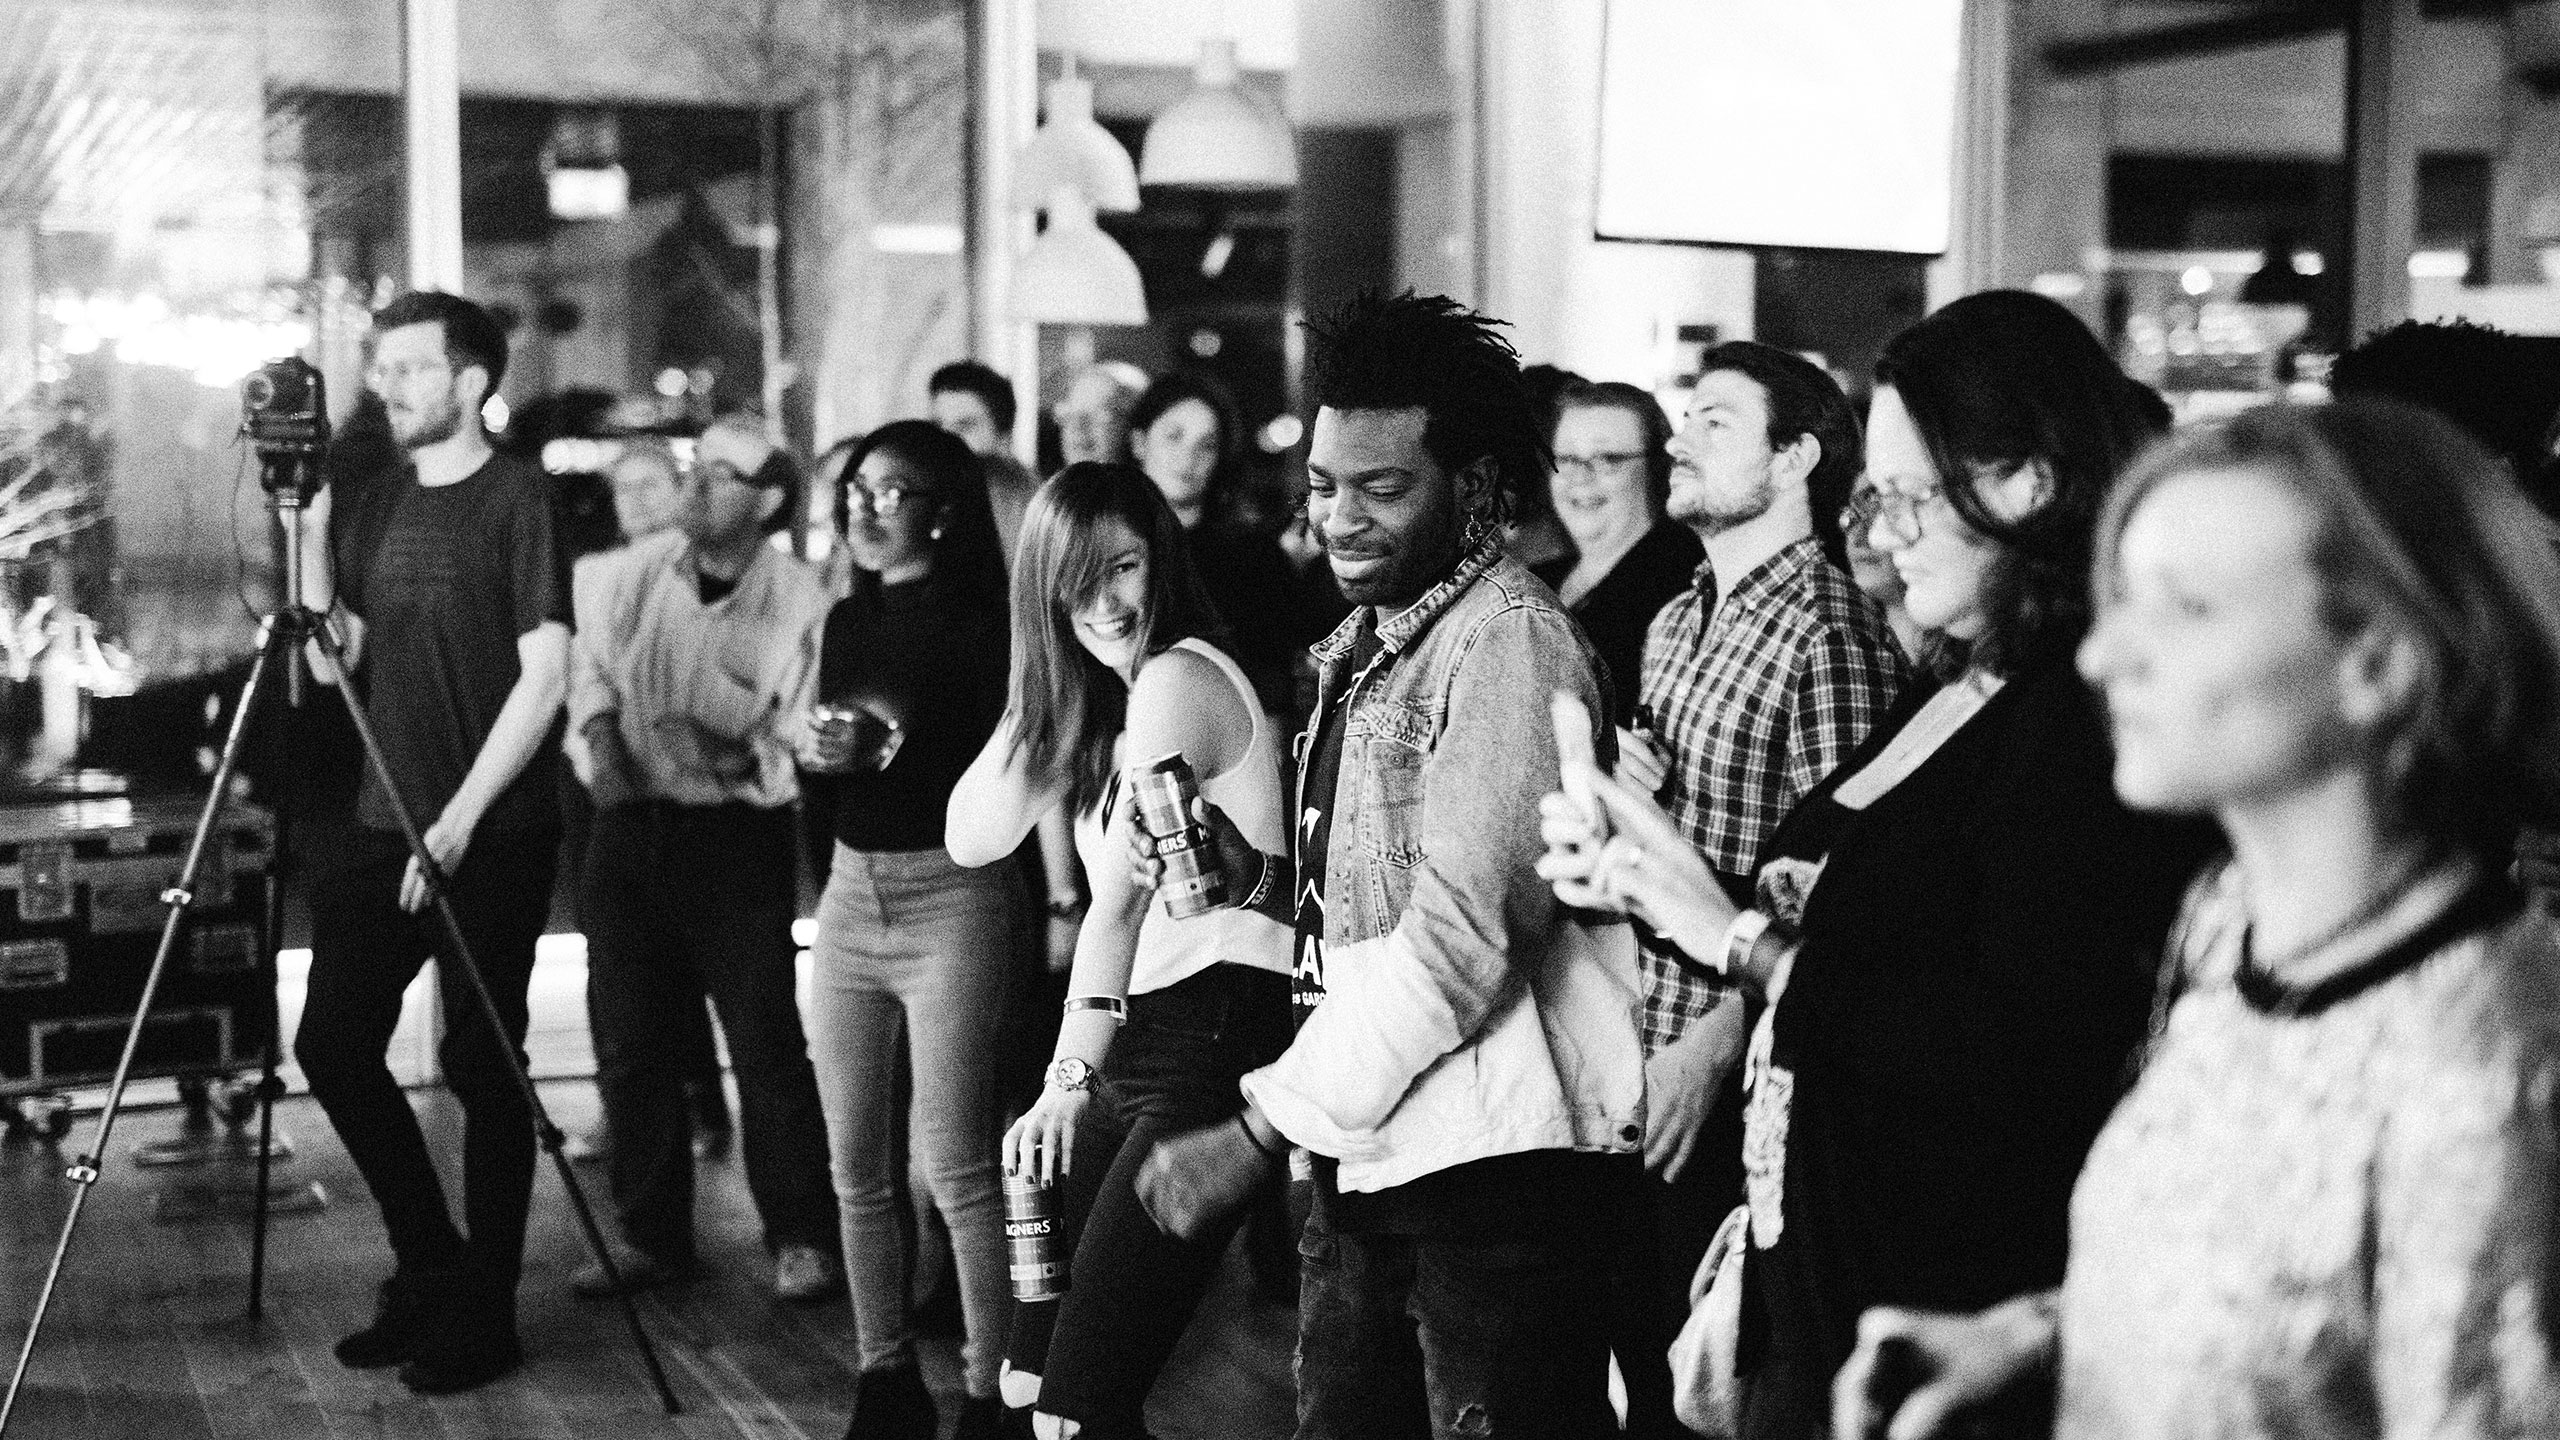 A black and white photo of the audience at PRS for Music Presents, including two people dancing and one taking a photo with their phone